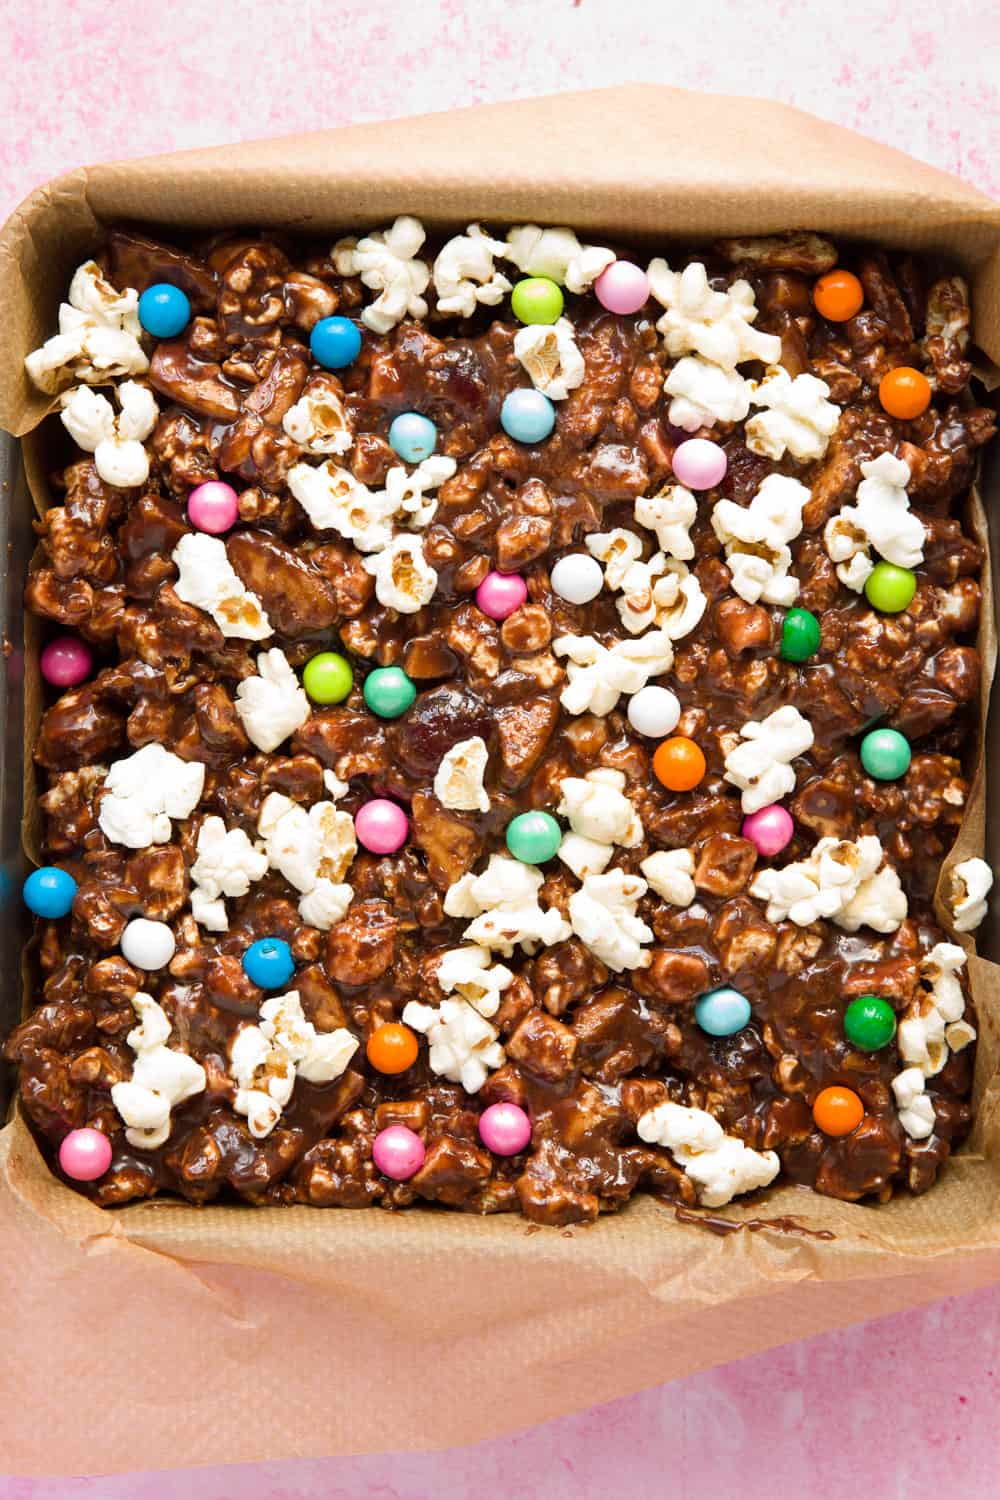 A slab of popcorn rocky road inside a square baking tin.